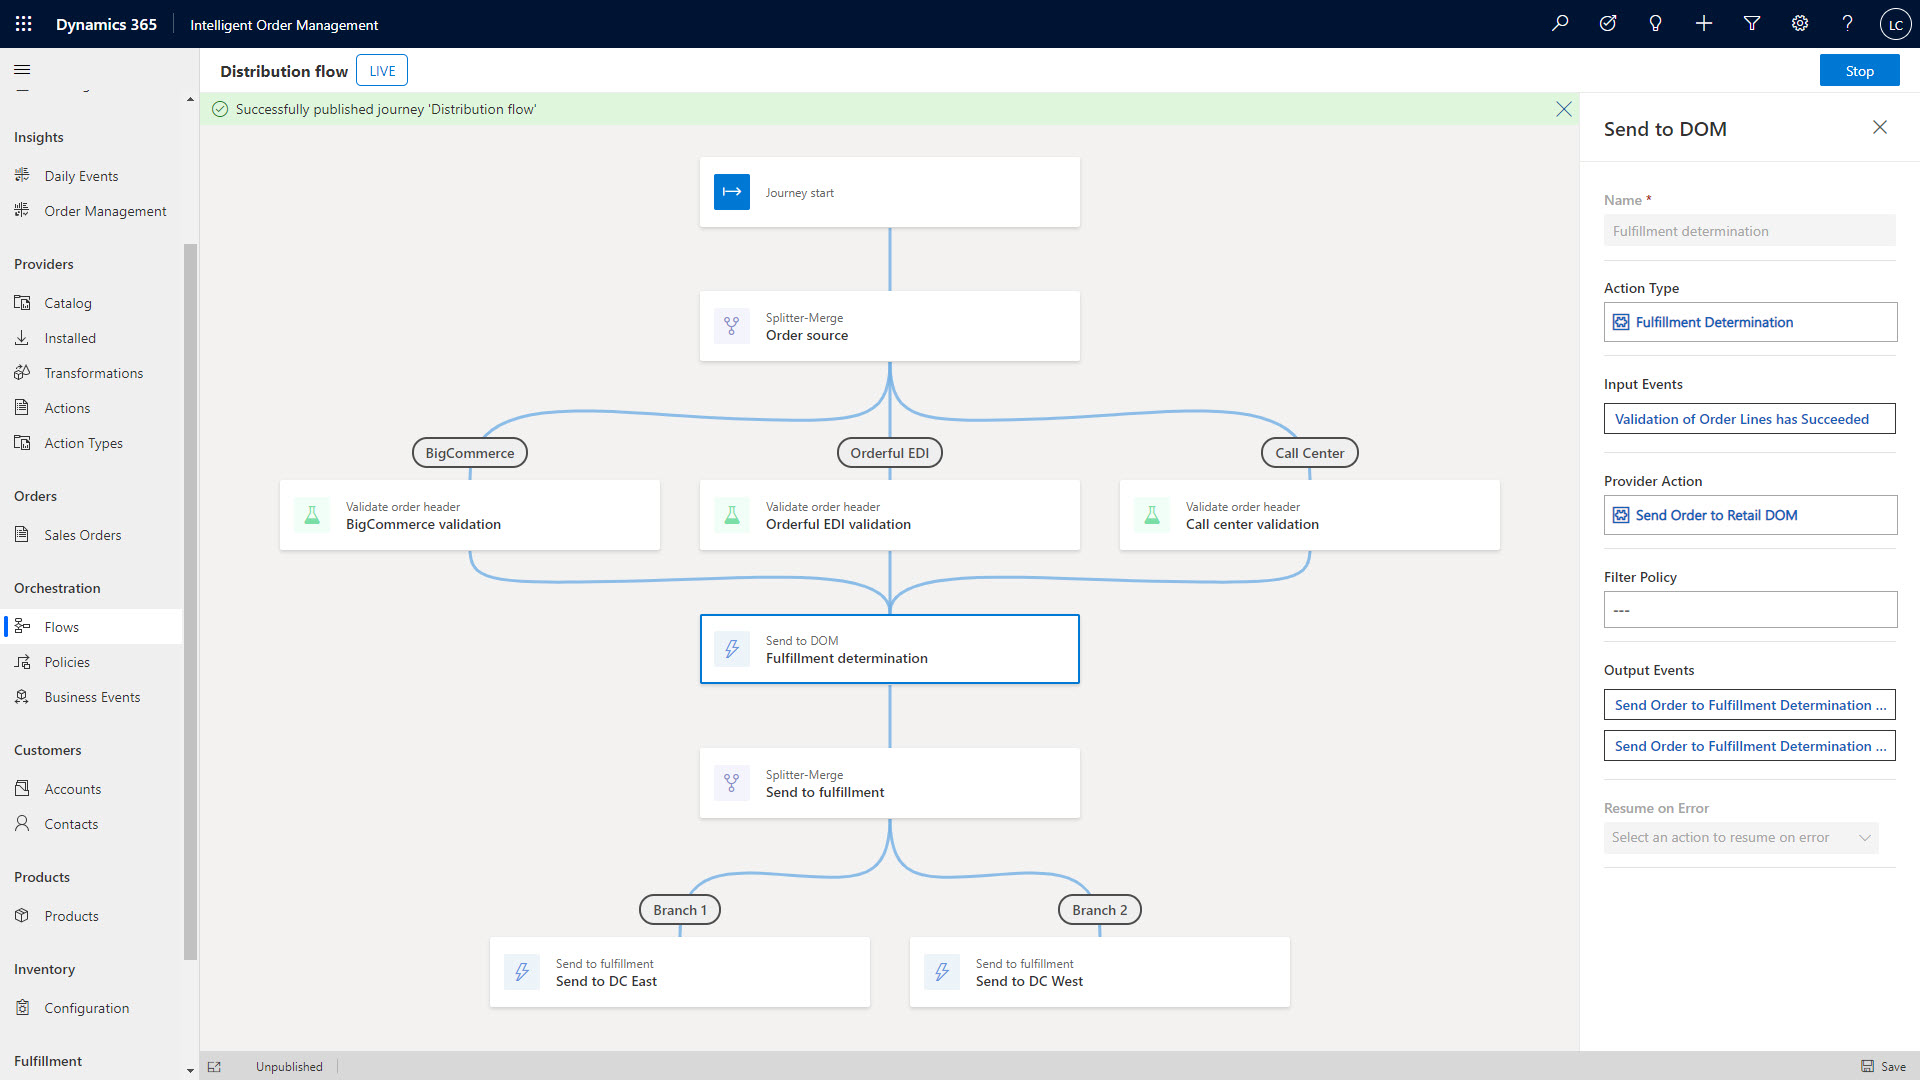 an example of how the order orchestration designer tool can help modify the order journey